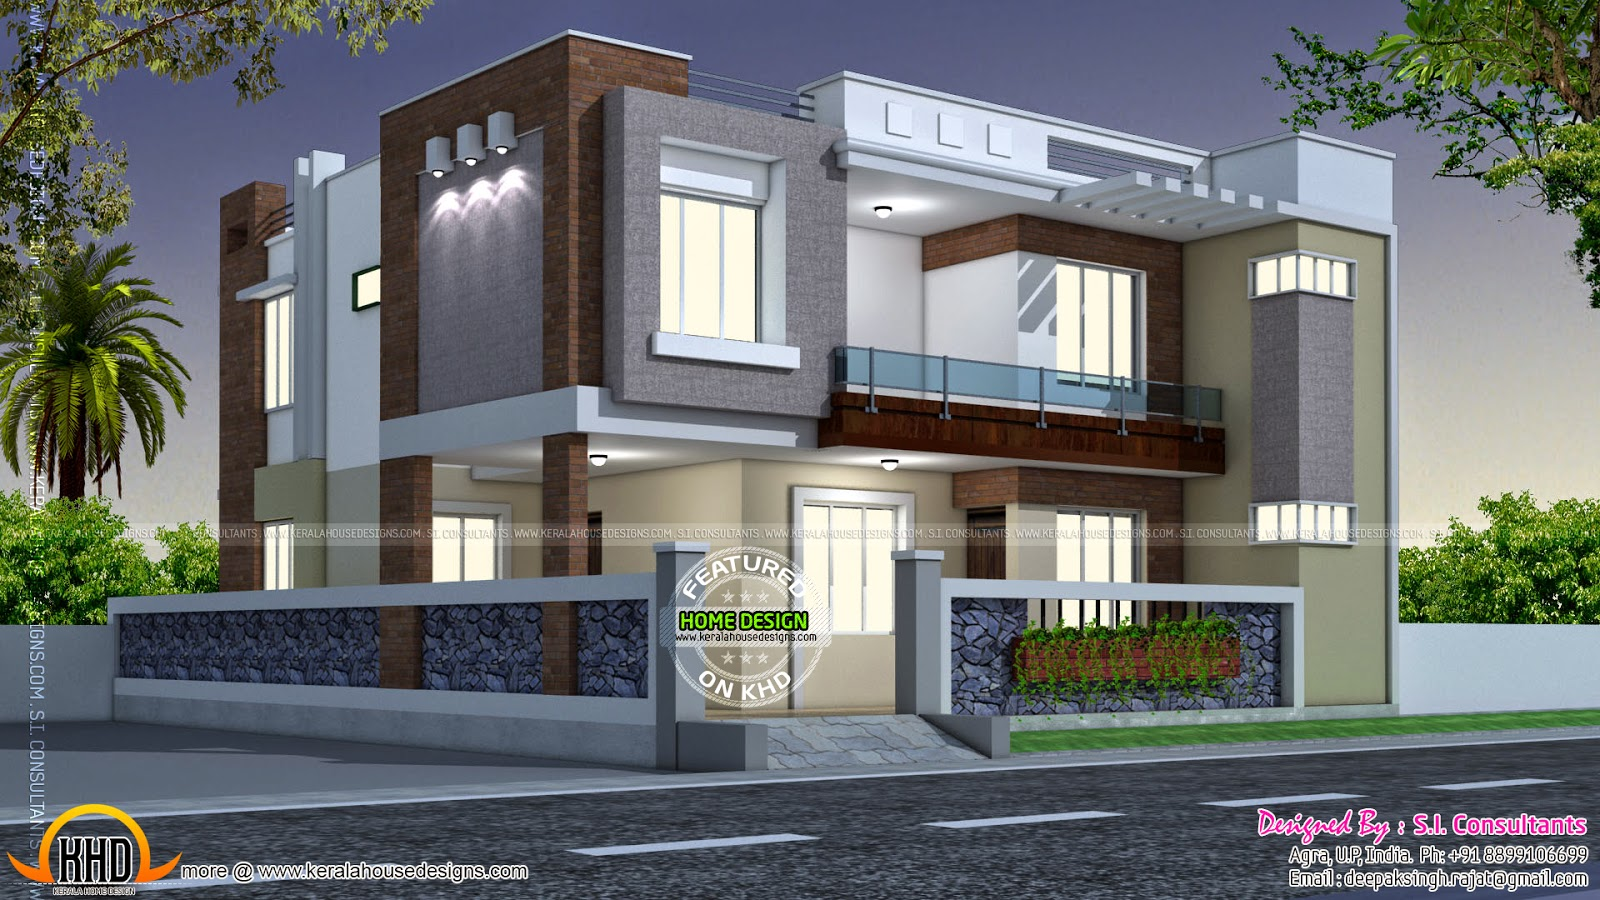 House plans and design modern house plans for india Indian home design plans